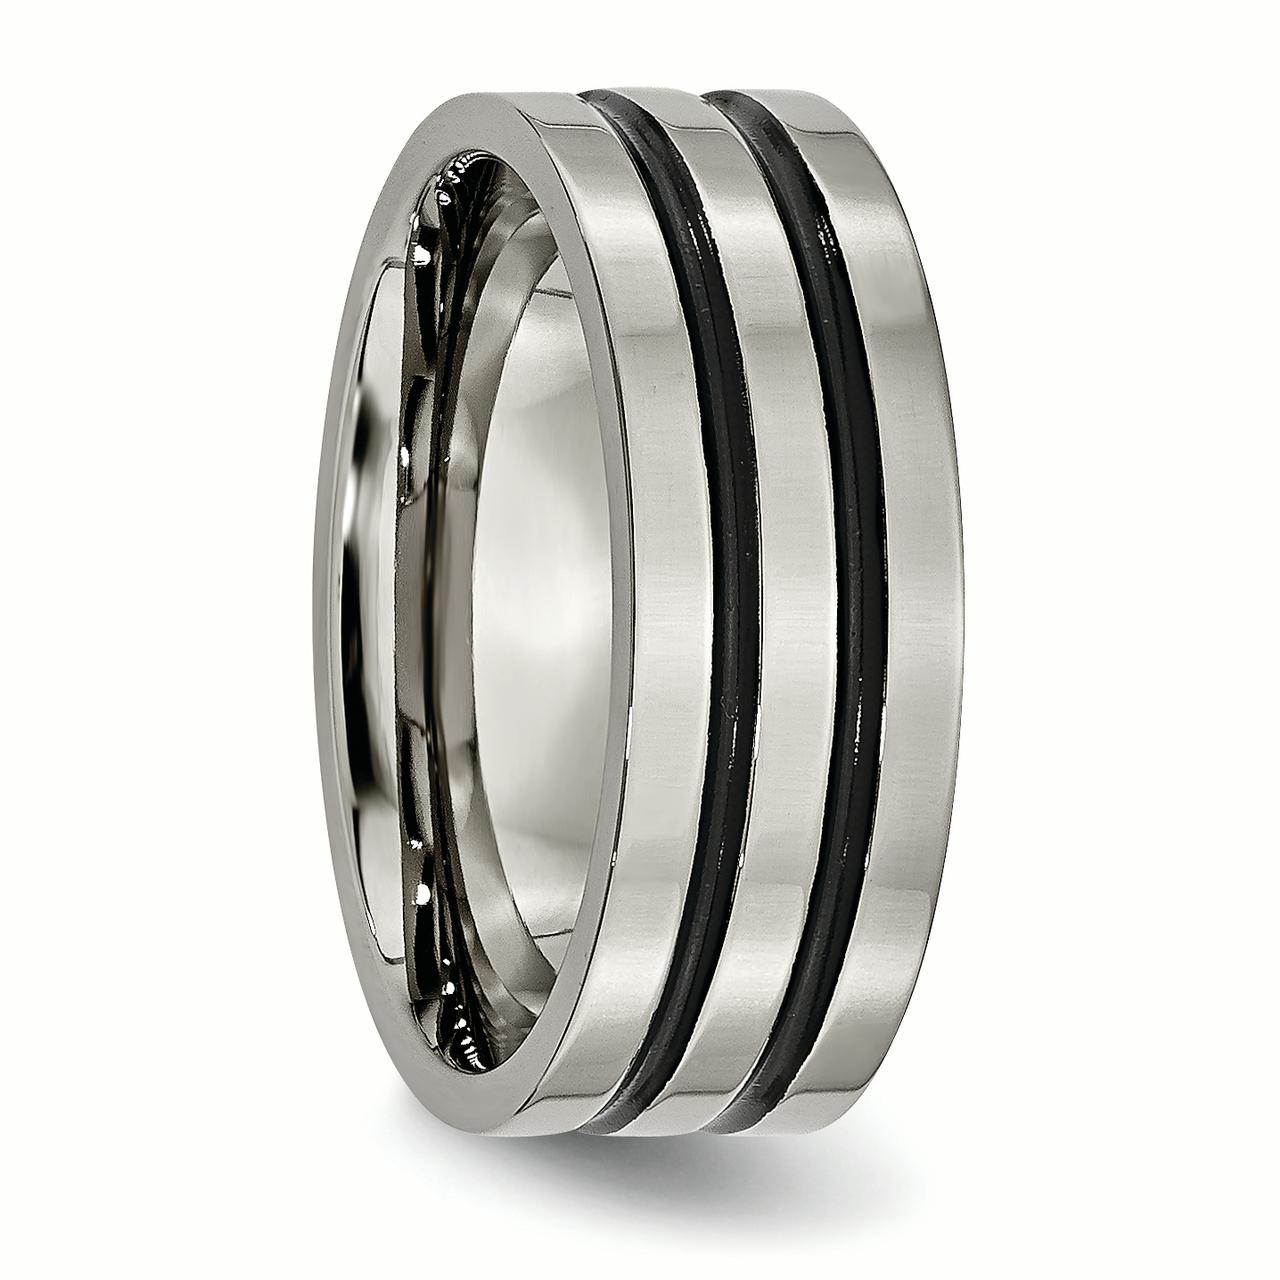 Titanium Enameled Grooved Flat 8mm Wedding Ring Band Size 10.00 Fashion Jewelry Gifts For Women For Her - image 4 of 6